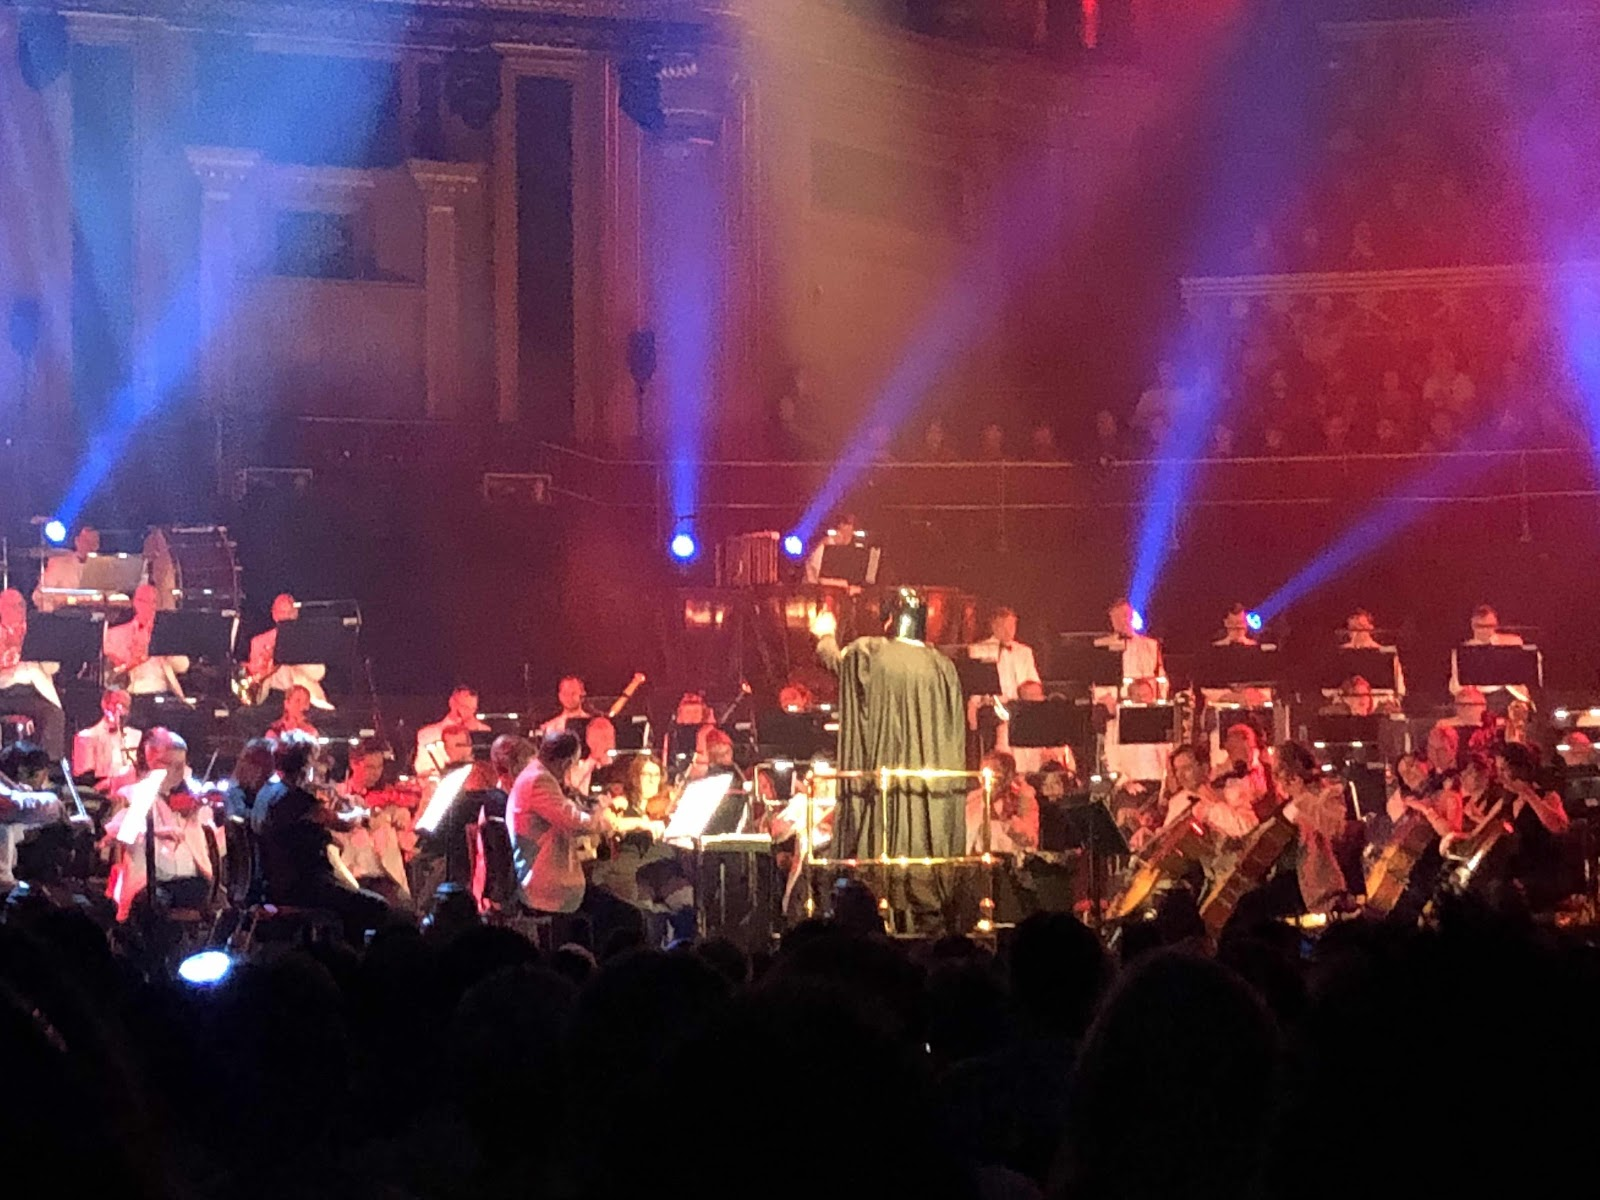 london-lifestyle-blog-things-to-do-in-london-royal-albert-hall-hans-zimmer-vs-john-williams-movie-soundtrack